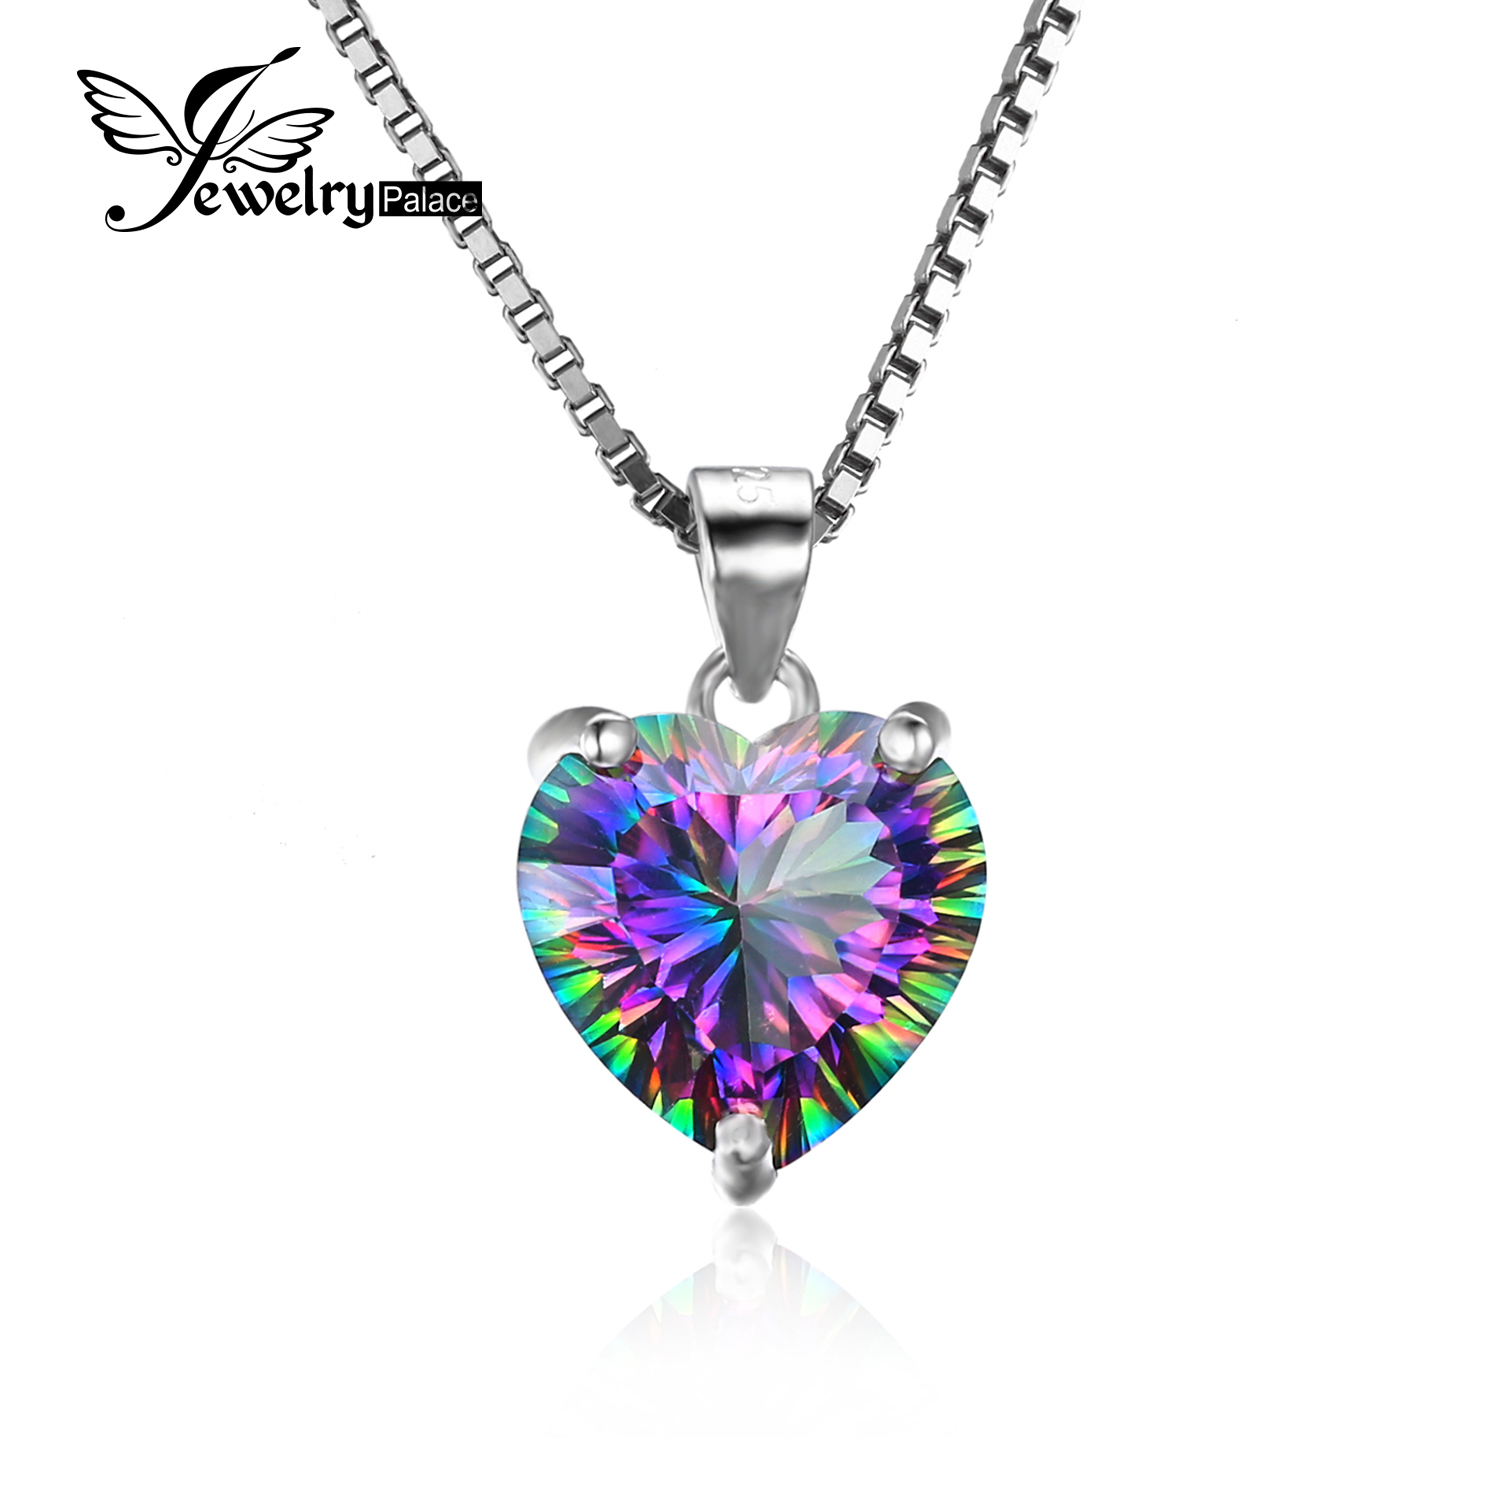 JewelryPalace 4 35ct Genuine Rainbow Fire Mystic Topaz Heart Pendant Solid 925 Sterling Silver Vintage Jewelry